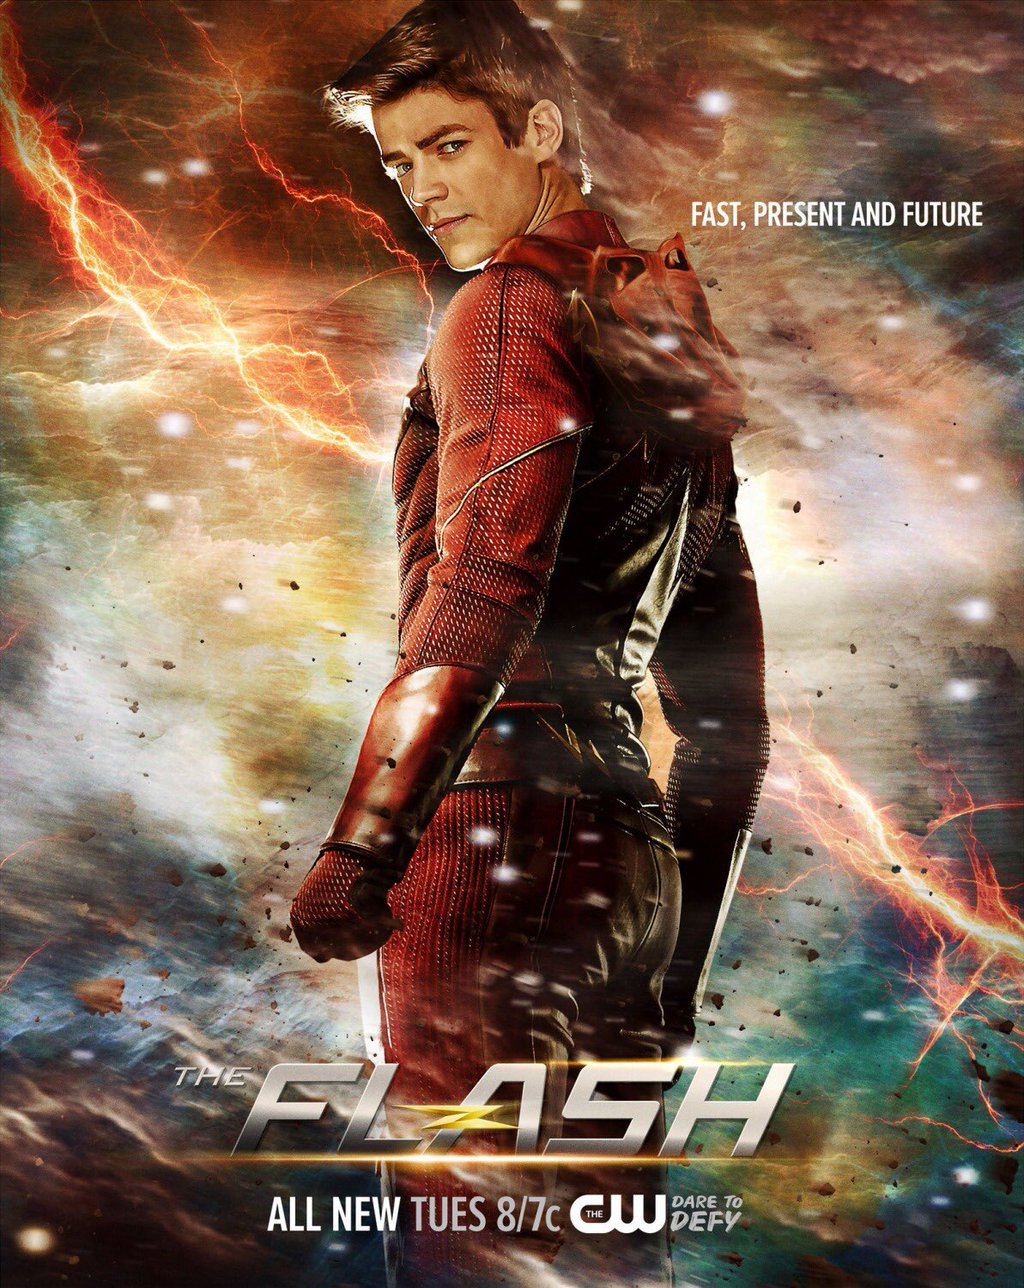 image cw the flash season 3 poster jpg comic books in the media